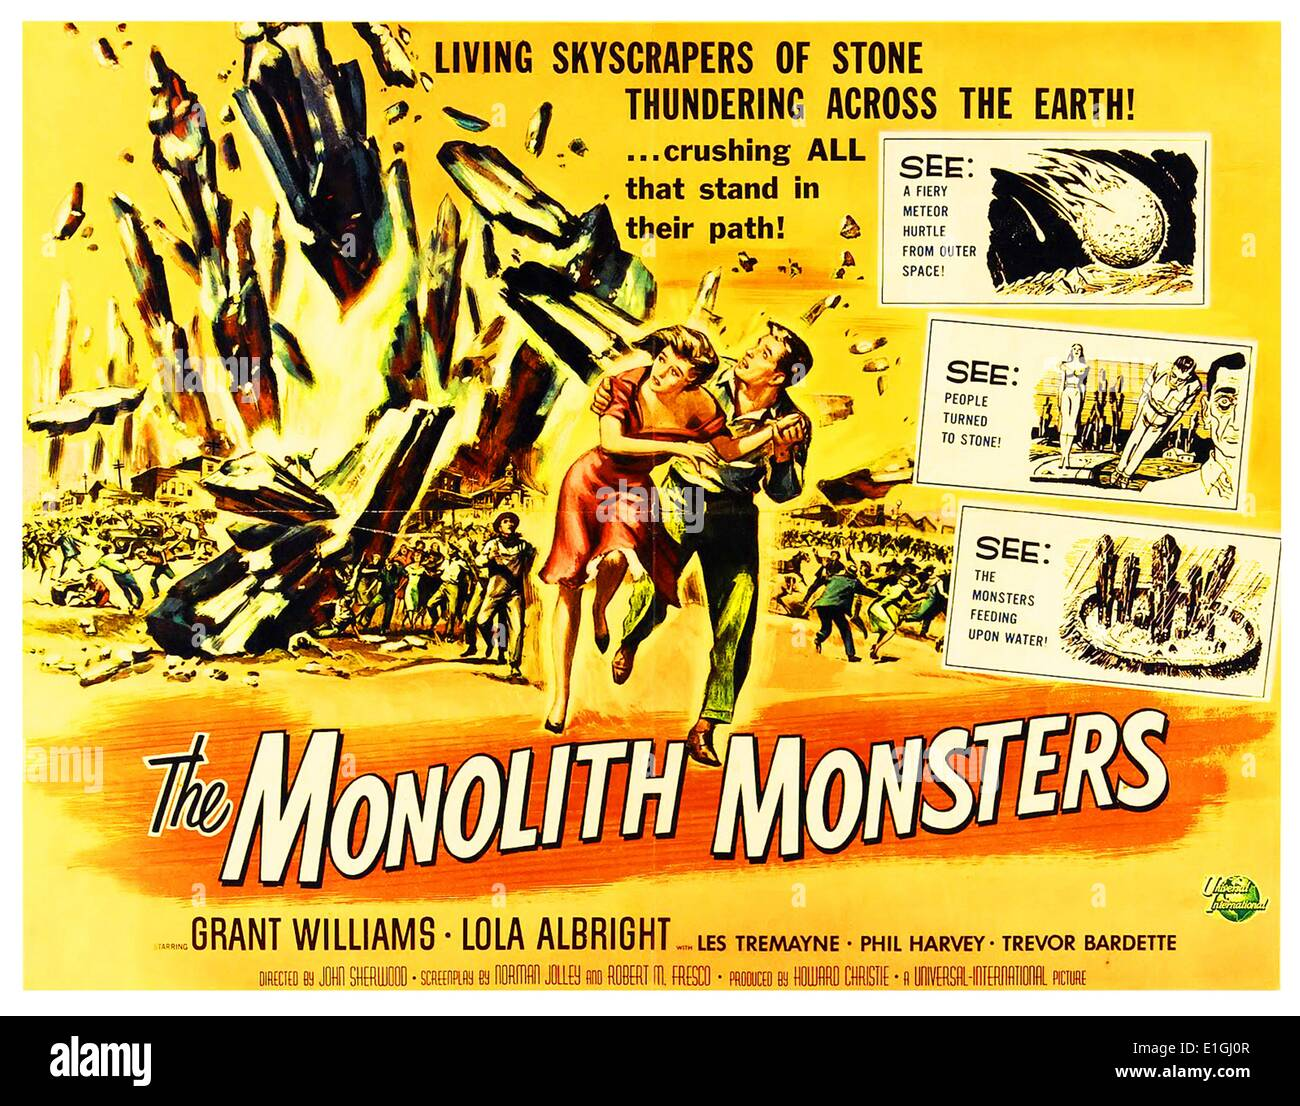 'The Monolith Monsters' starring Grant Williams and Lola Albright a 1957 science fiction film. - Stock Image